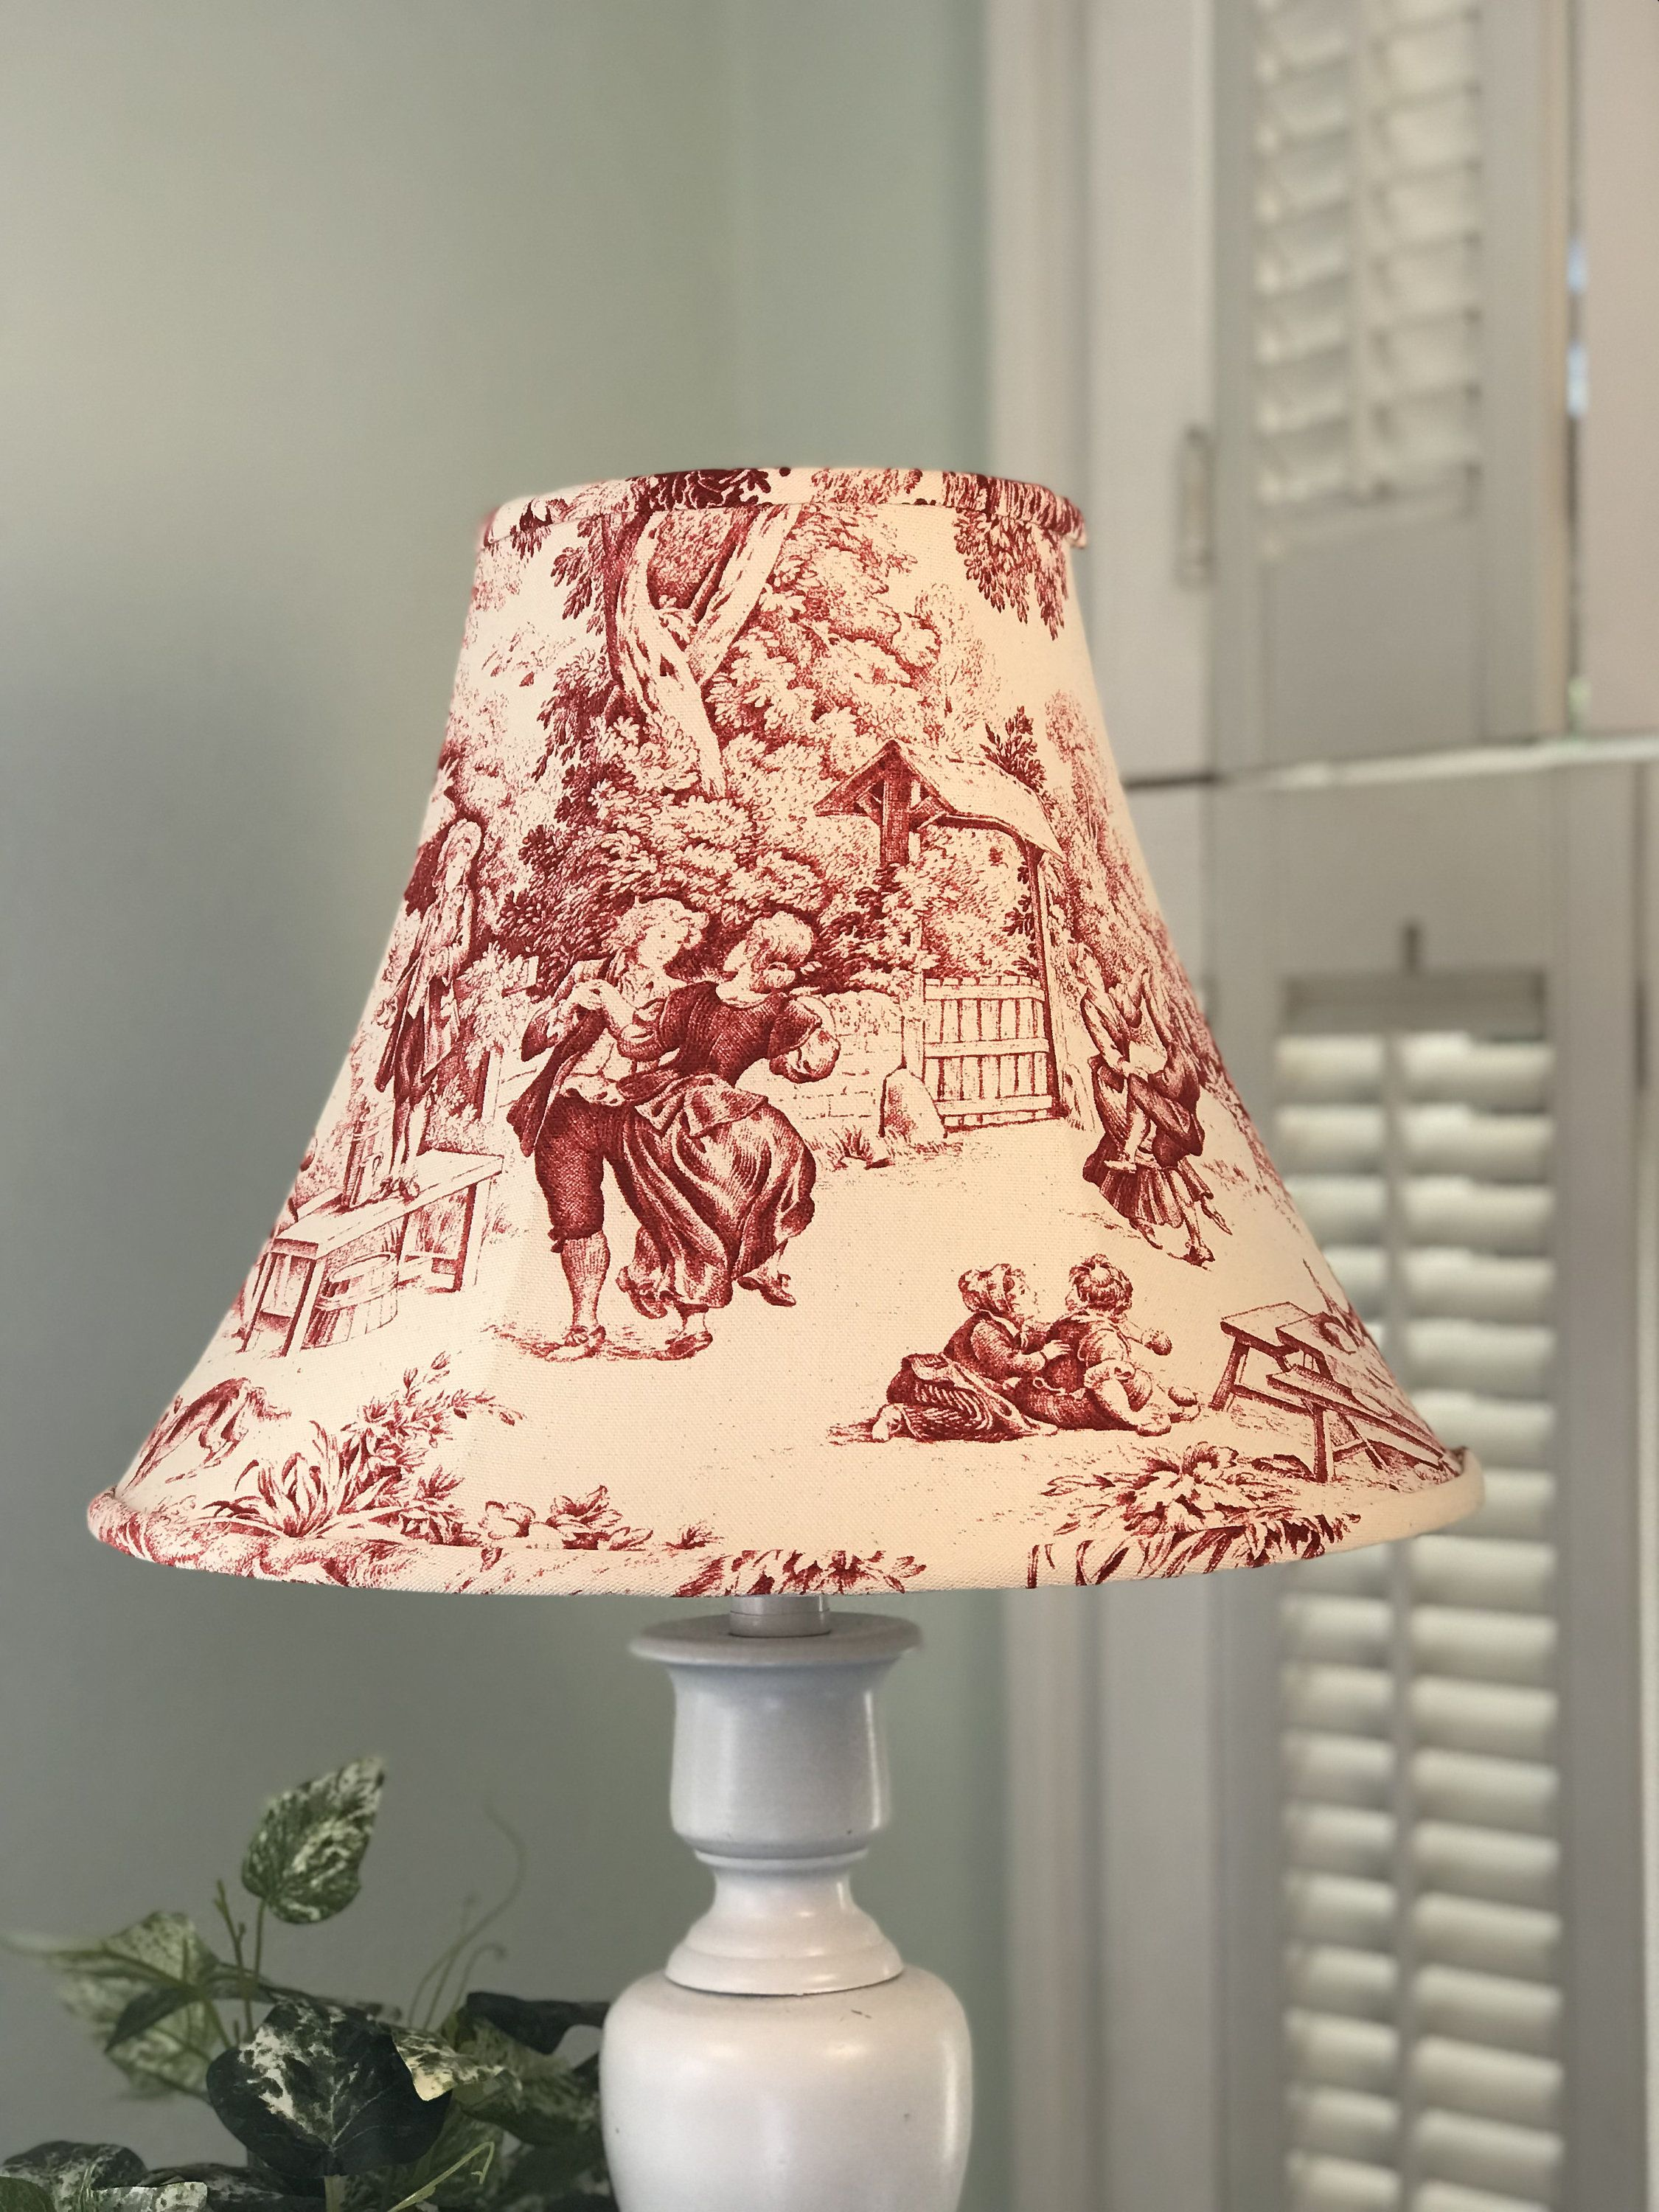 Toile Lamp Shade Red Toile Lamp Shade French Lamp Shade Red Lamp Shade French Toile Lamp Shade Free Shipping In 2020 Red Lamp Shade French Lamp Shades Lamp Shade